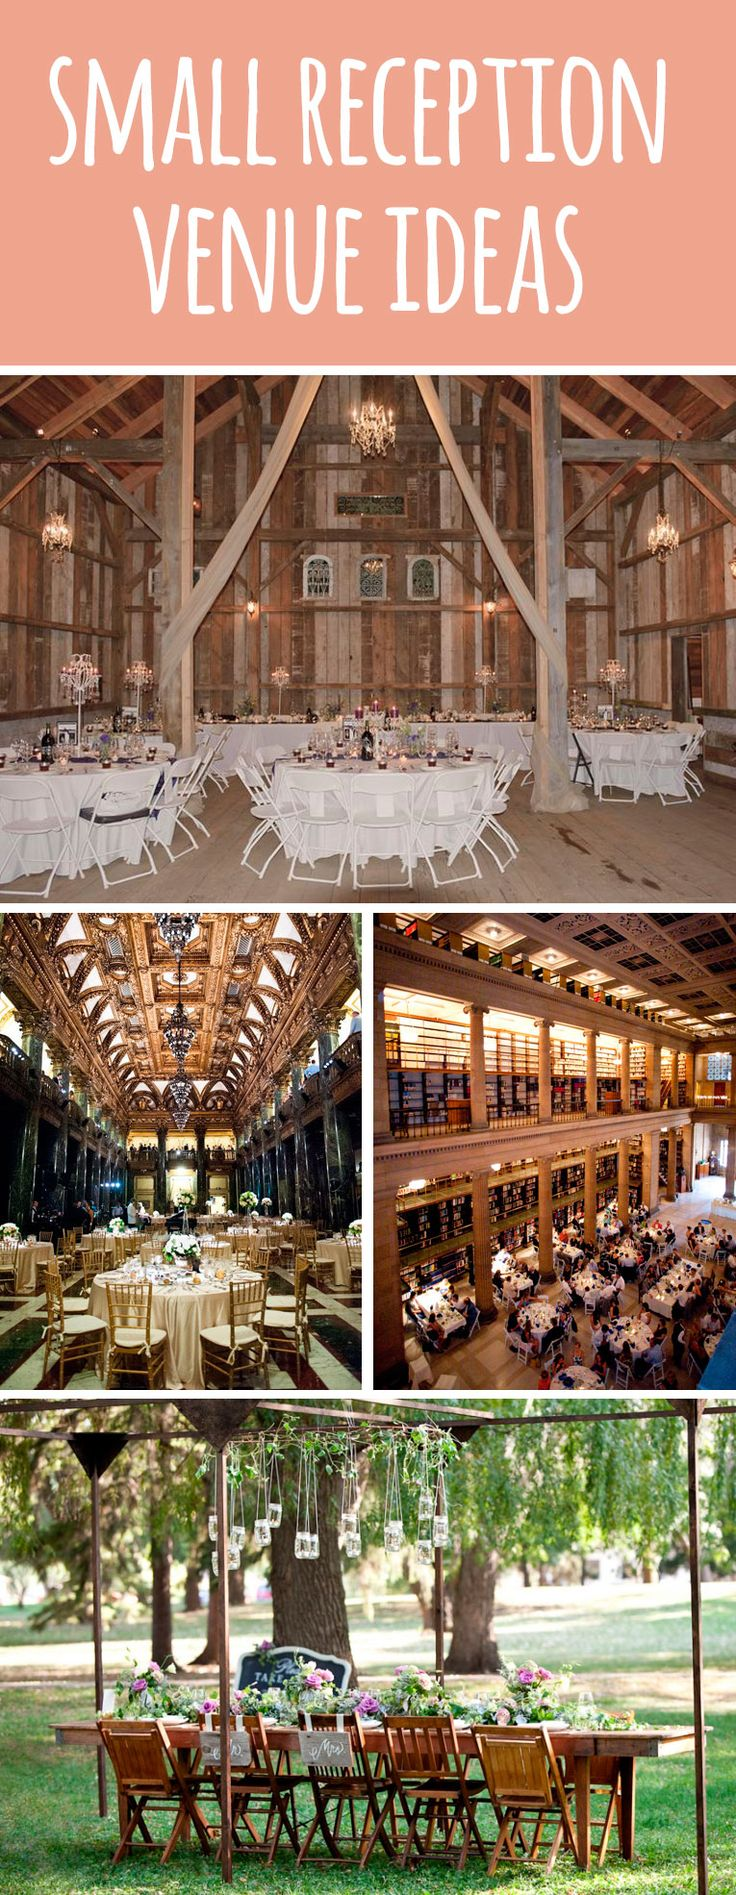 Small wedding reception venue ideas. #smallwedding